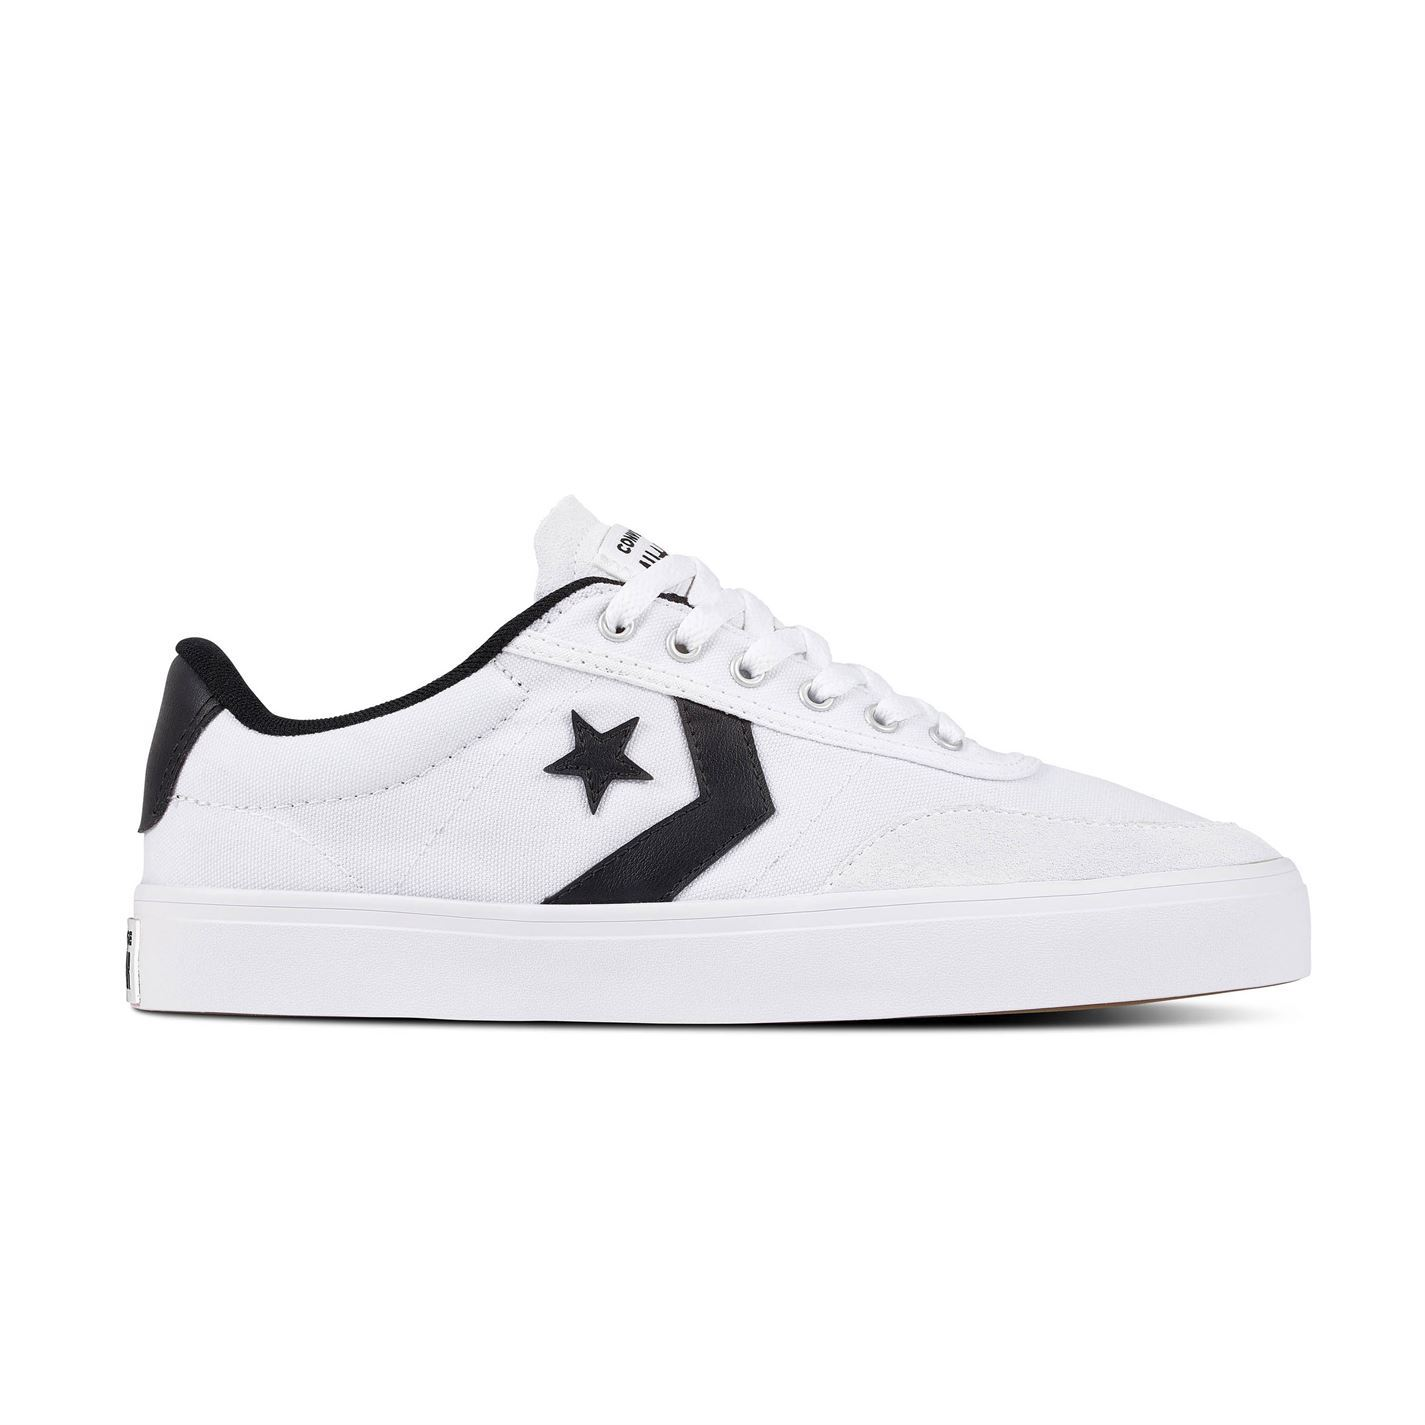 643cd586771450 ... Converse Courtlandt Canvas Shoes Mens Footwear Trainers Sneakers